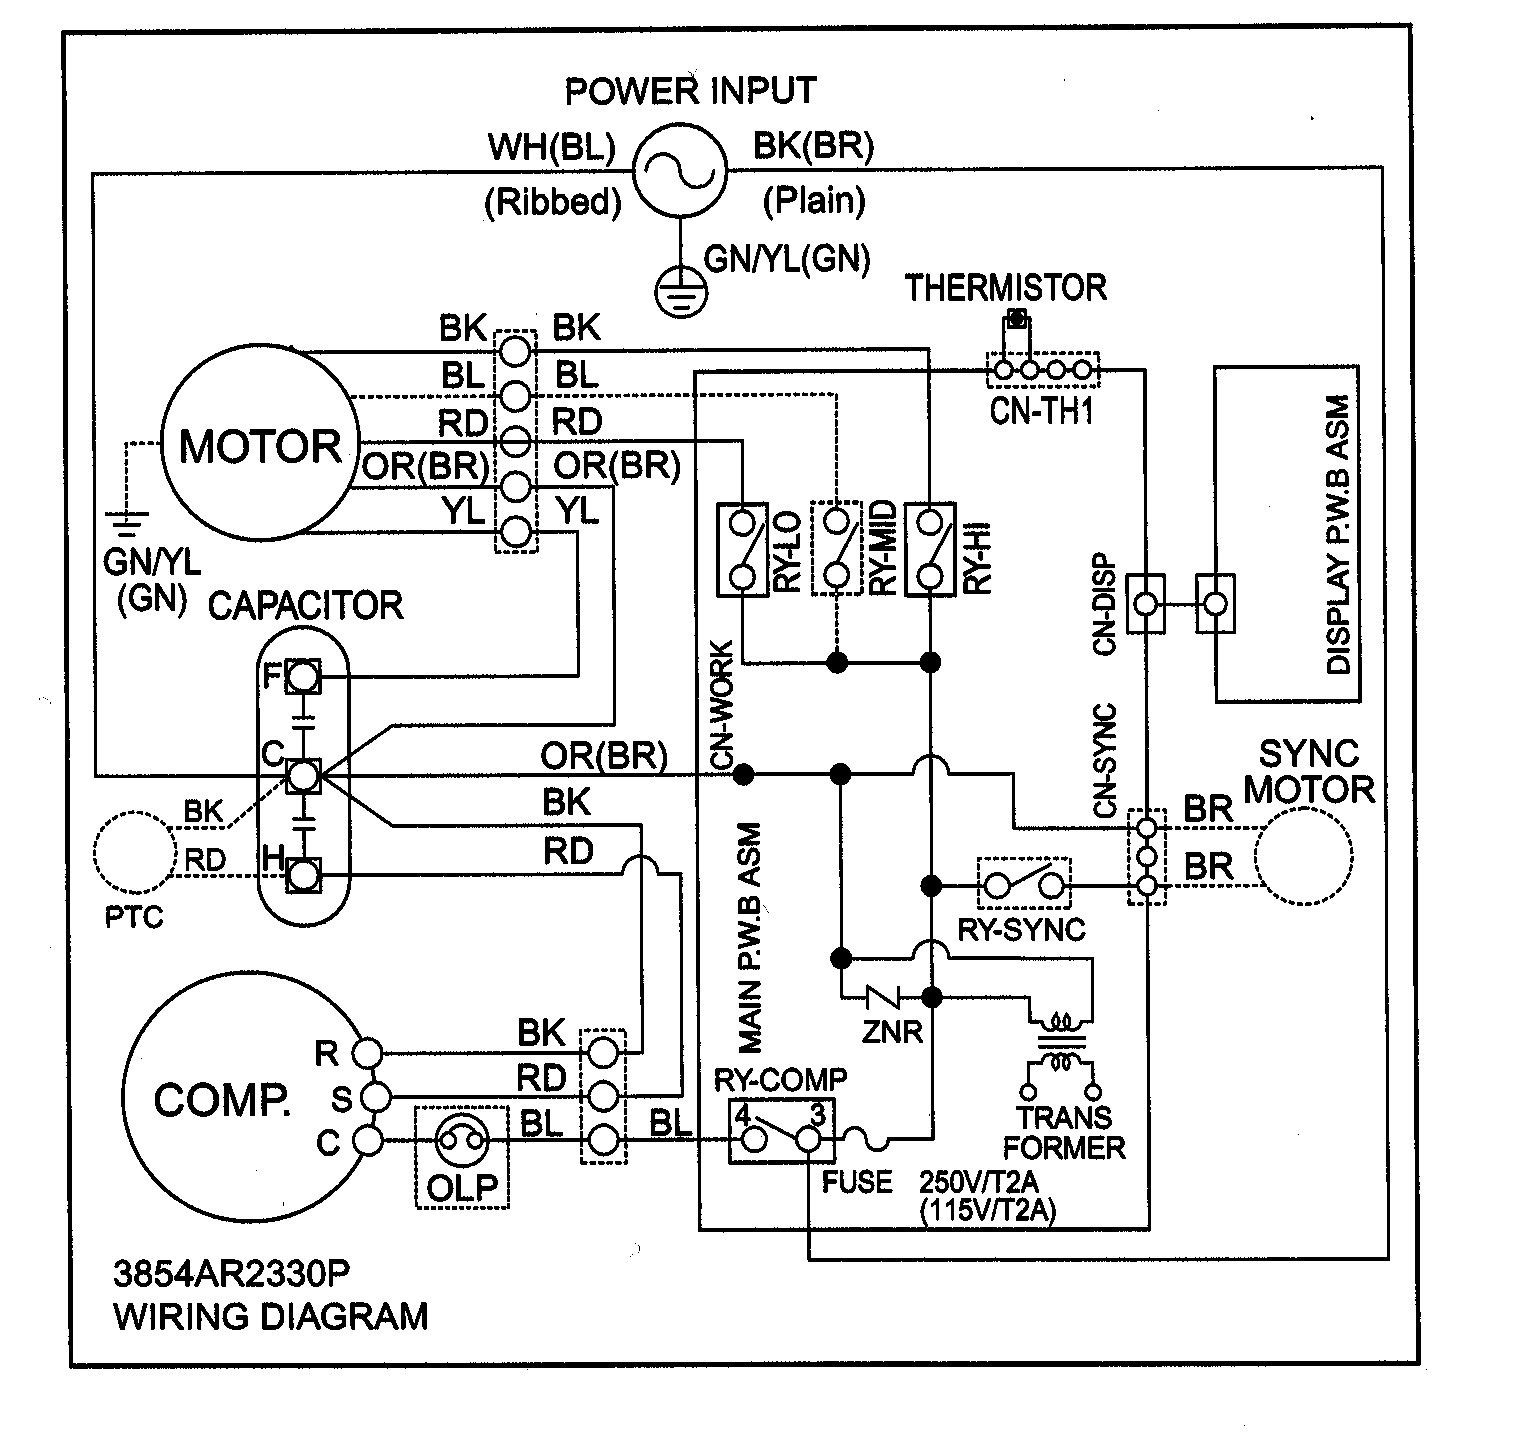 samsung window air conditioner wiring diagram -citroen c4 engine wiring  diagram | begeboy wiring diagram source  begeboy wiring diagram source